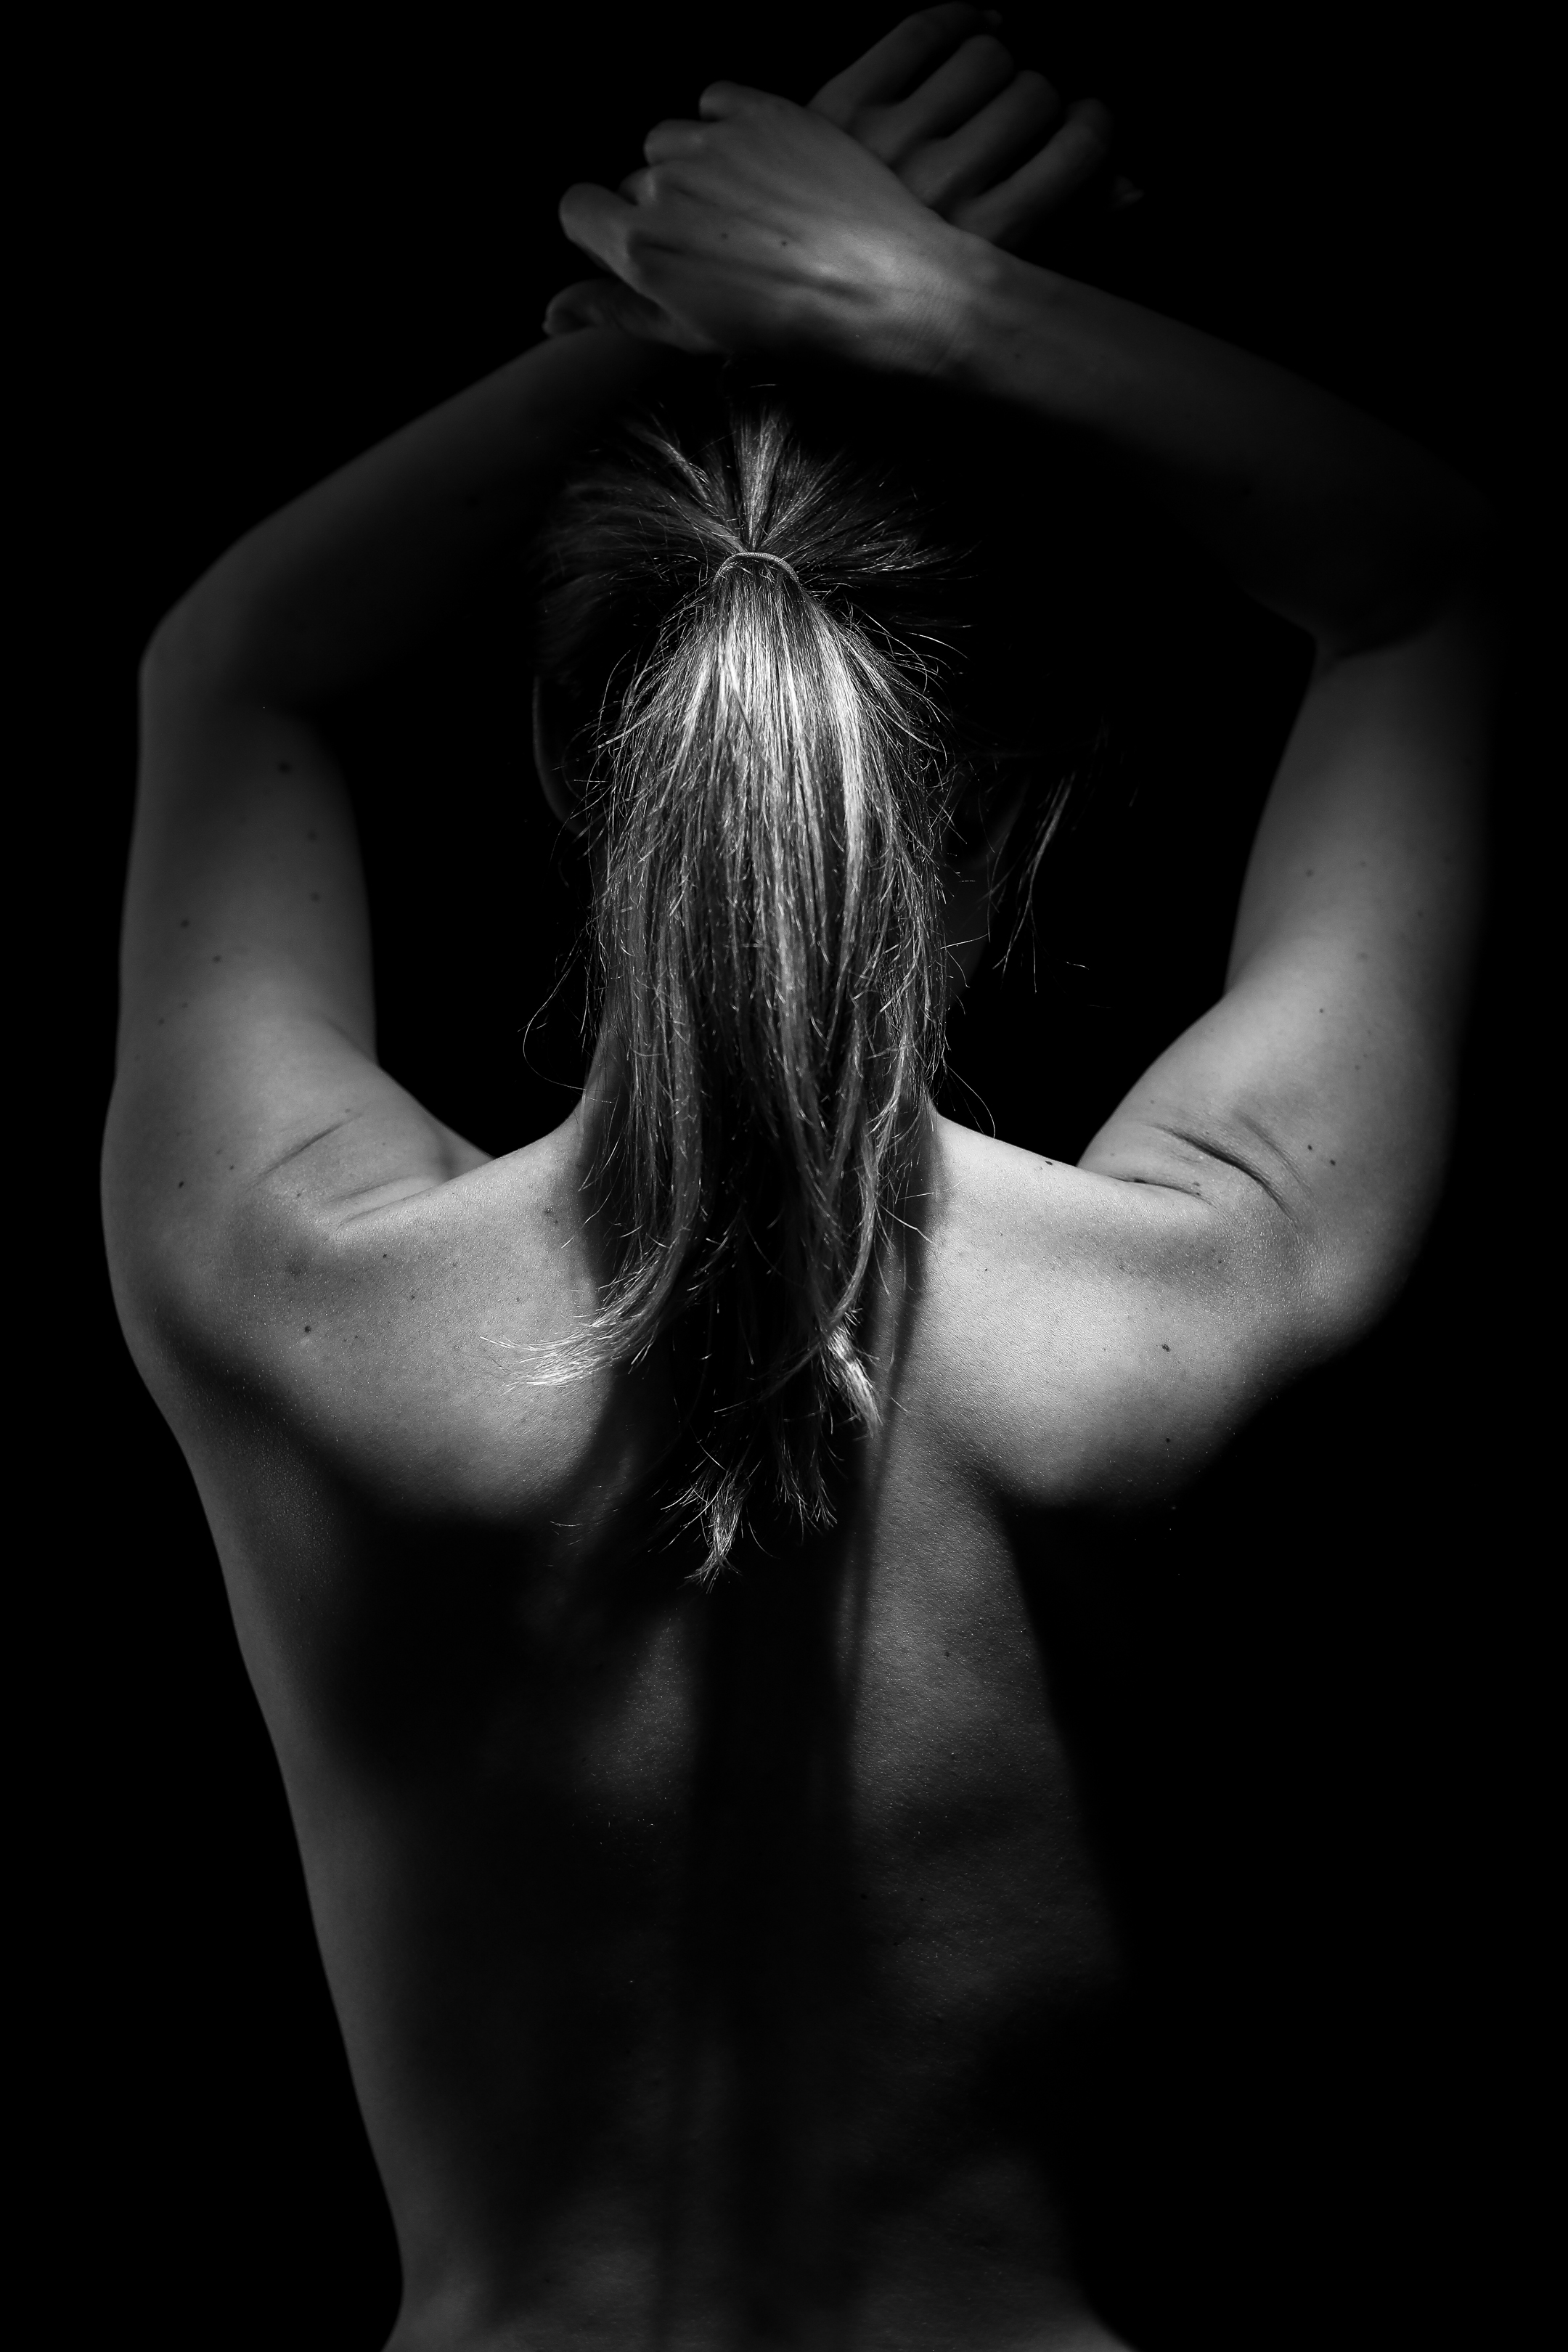 Photography by Benamoz - Ponytail